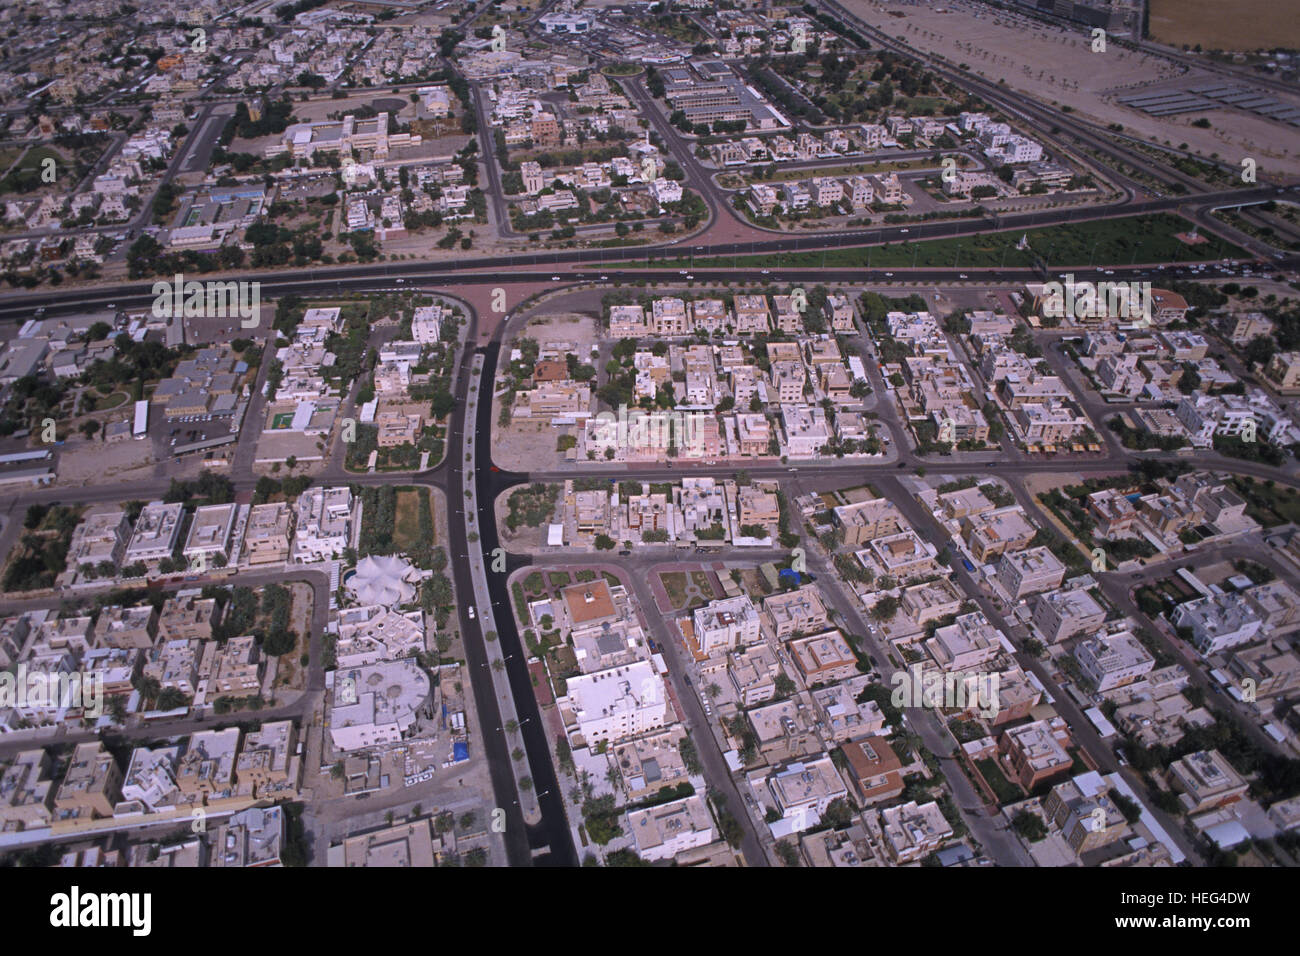 Aerial view of Kuwait city. Kuwait - Stock Image